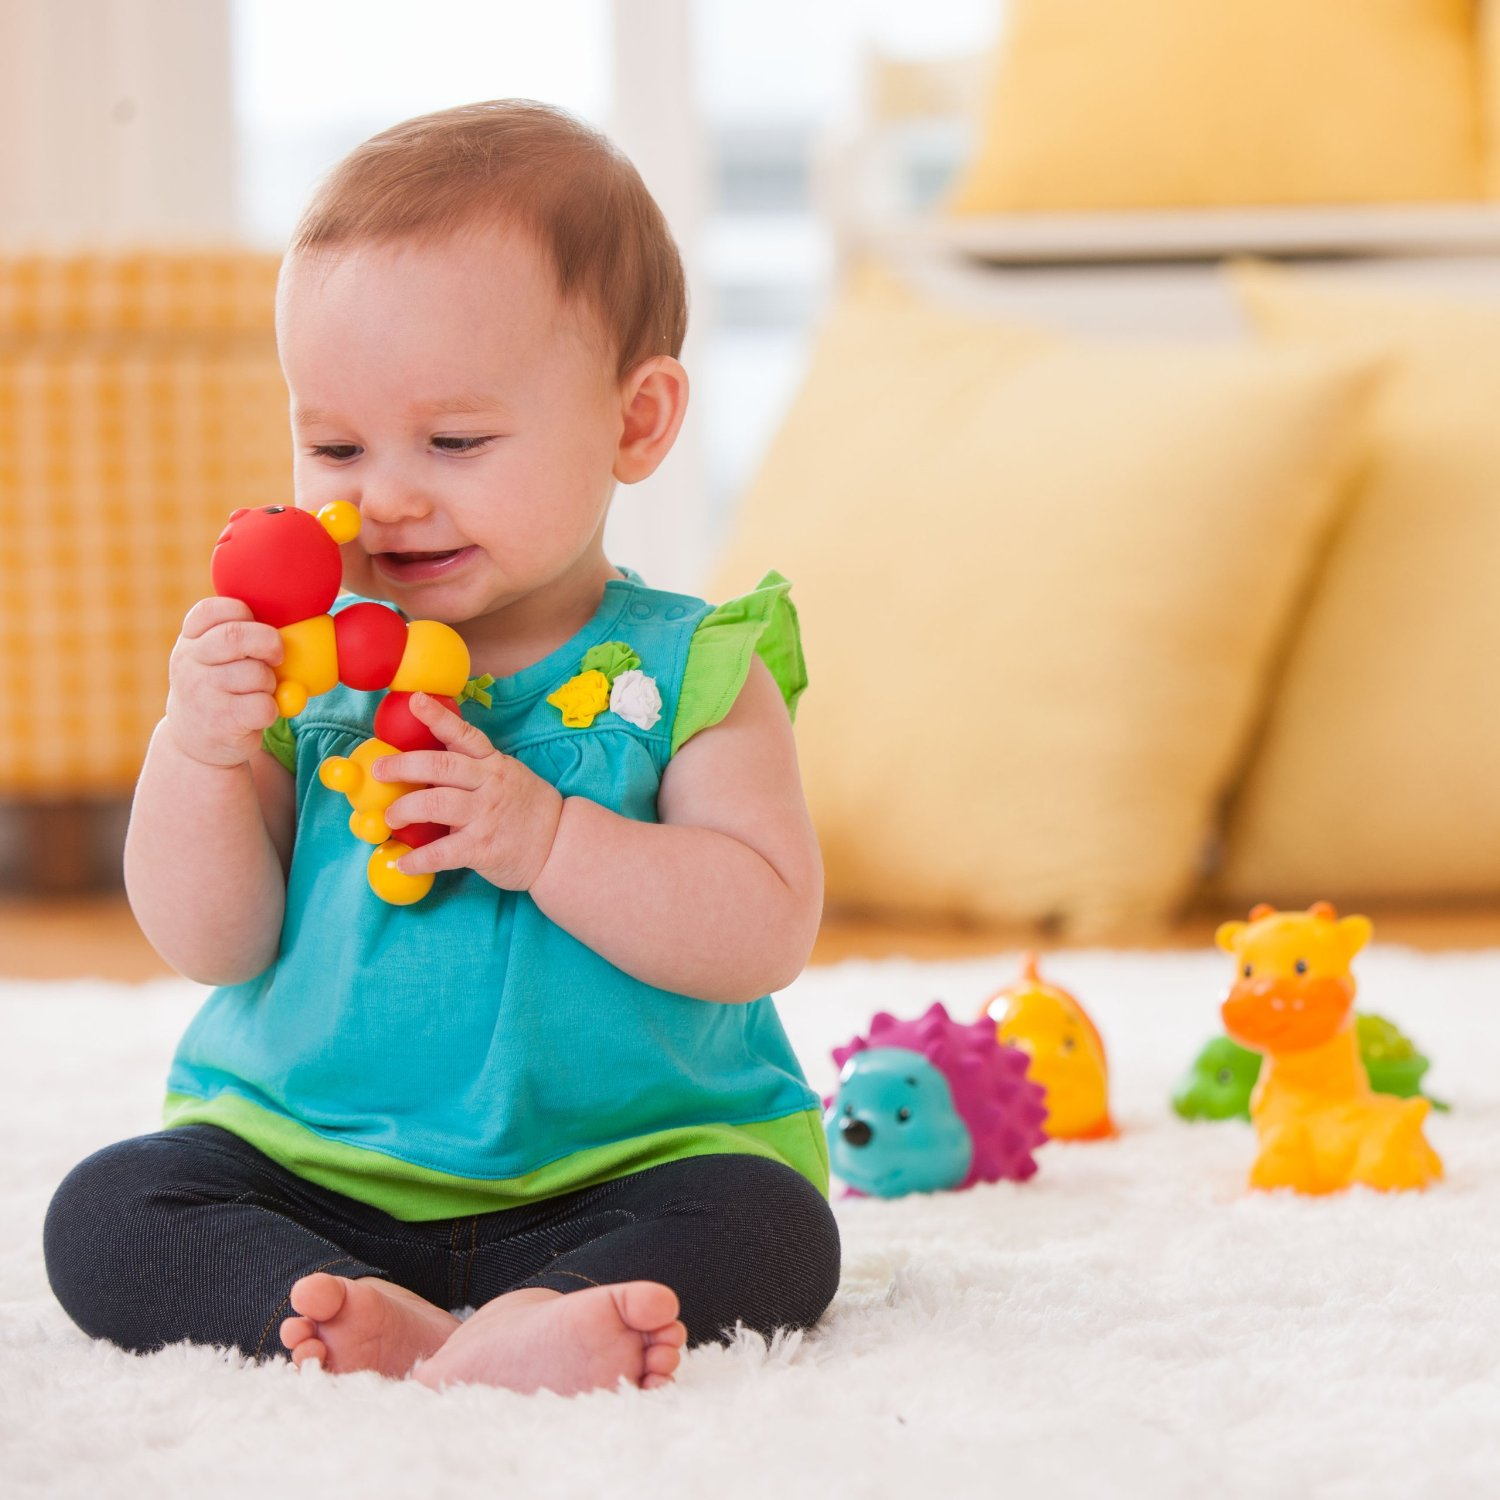 5 Months For Baby Toys : Best baby toys accessories for months from a mom of